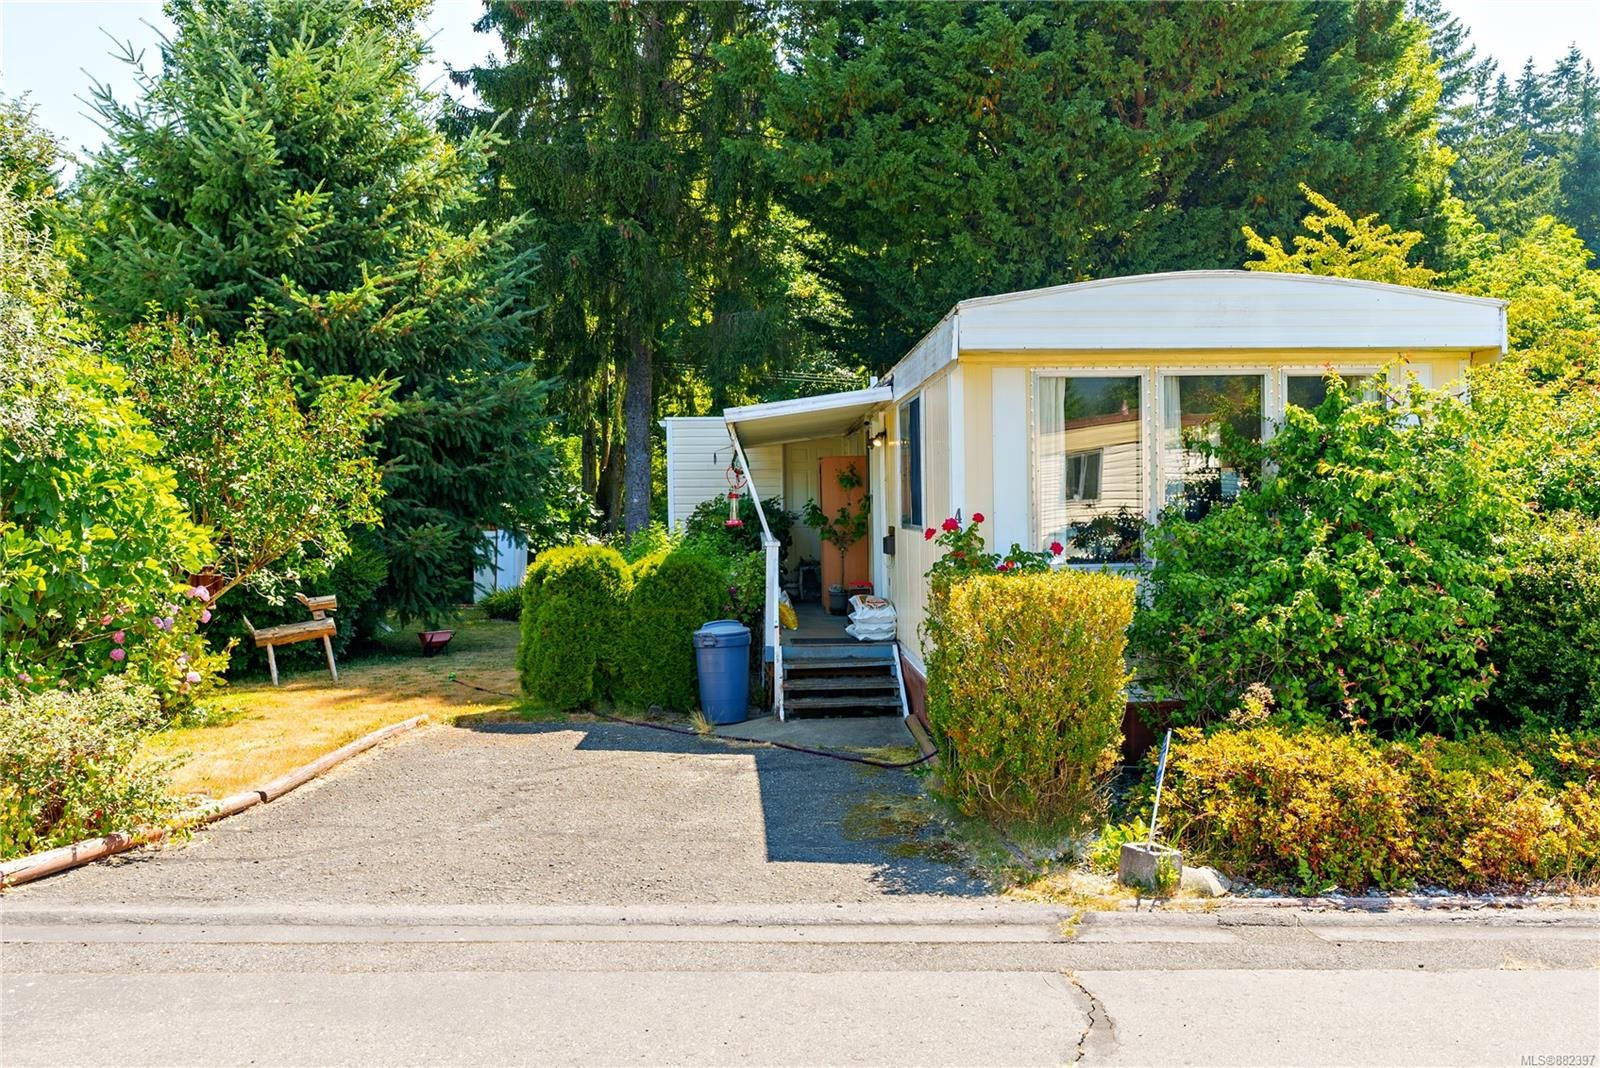 Main Photo: 48 Honey Dr in : Na South Nanaimo Manufactured Home for sale (Nanaimo)  : MLS®# 882397